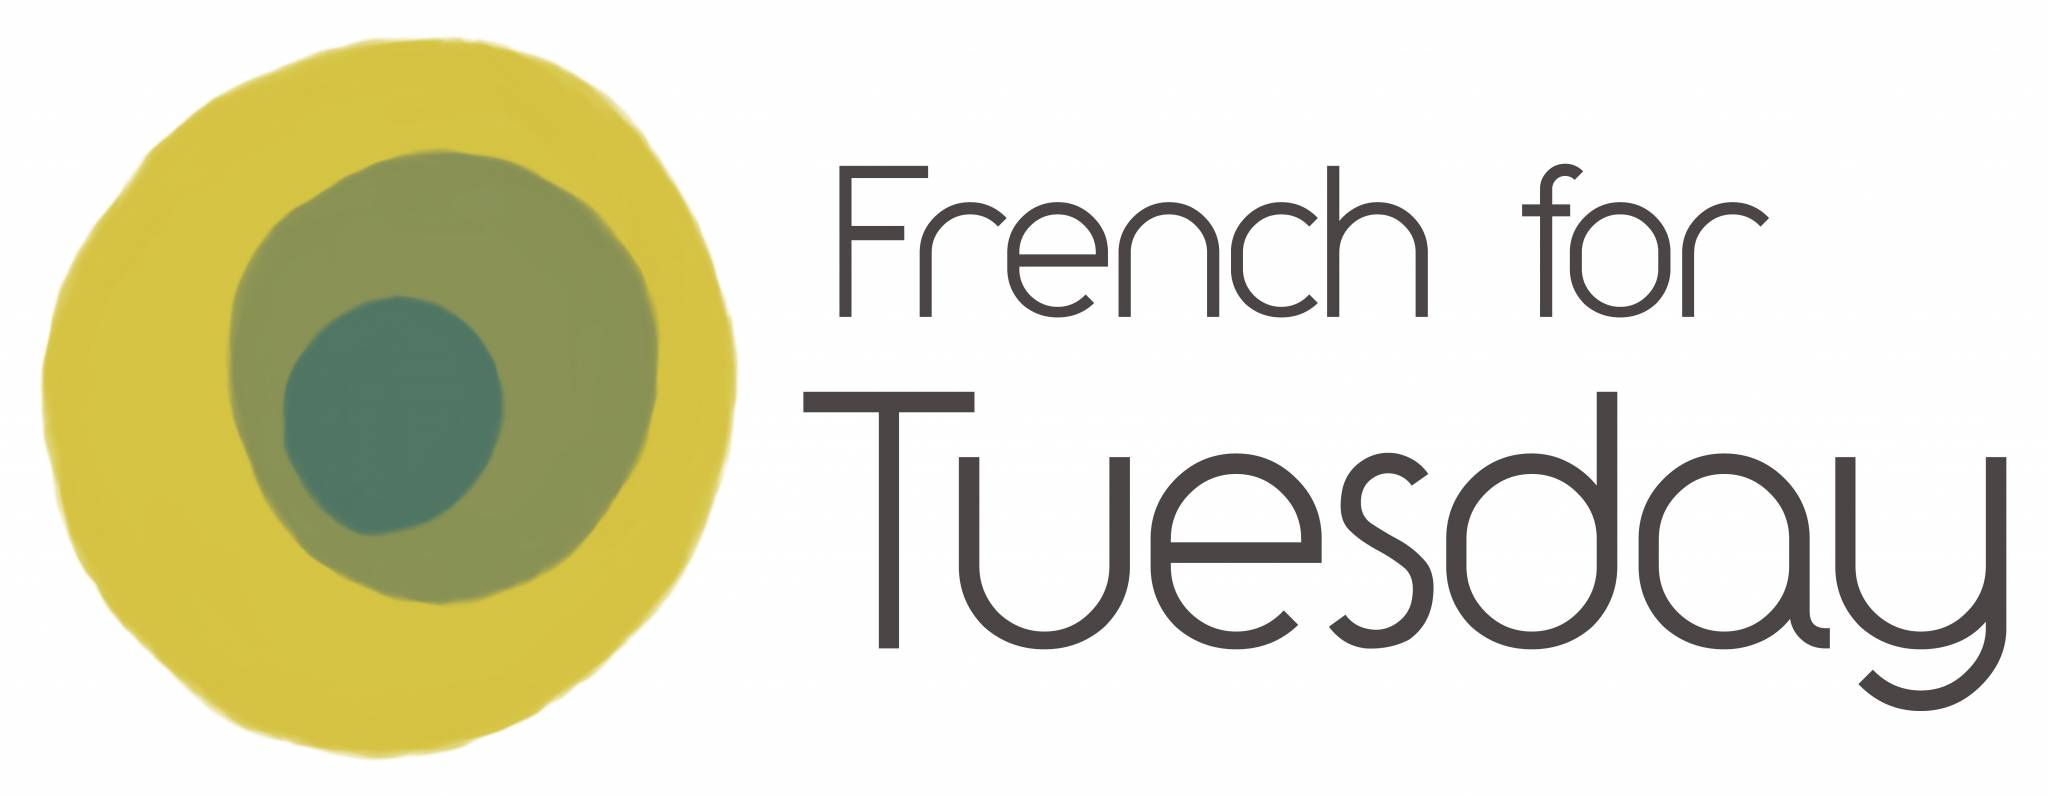 French for Tuesday